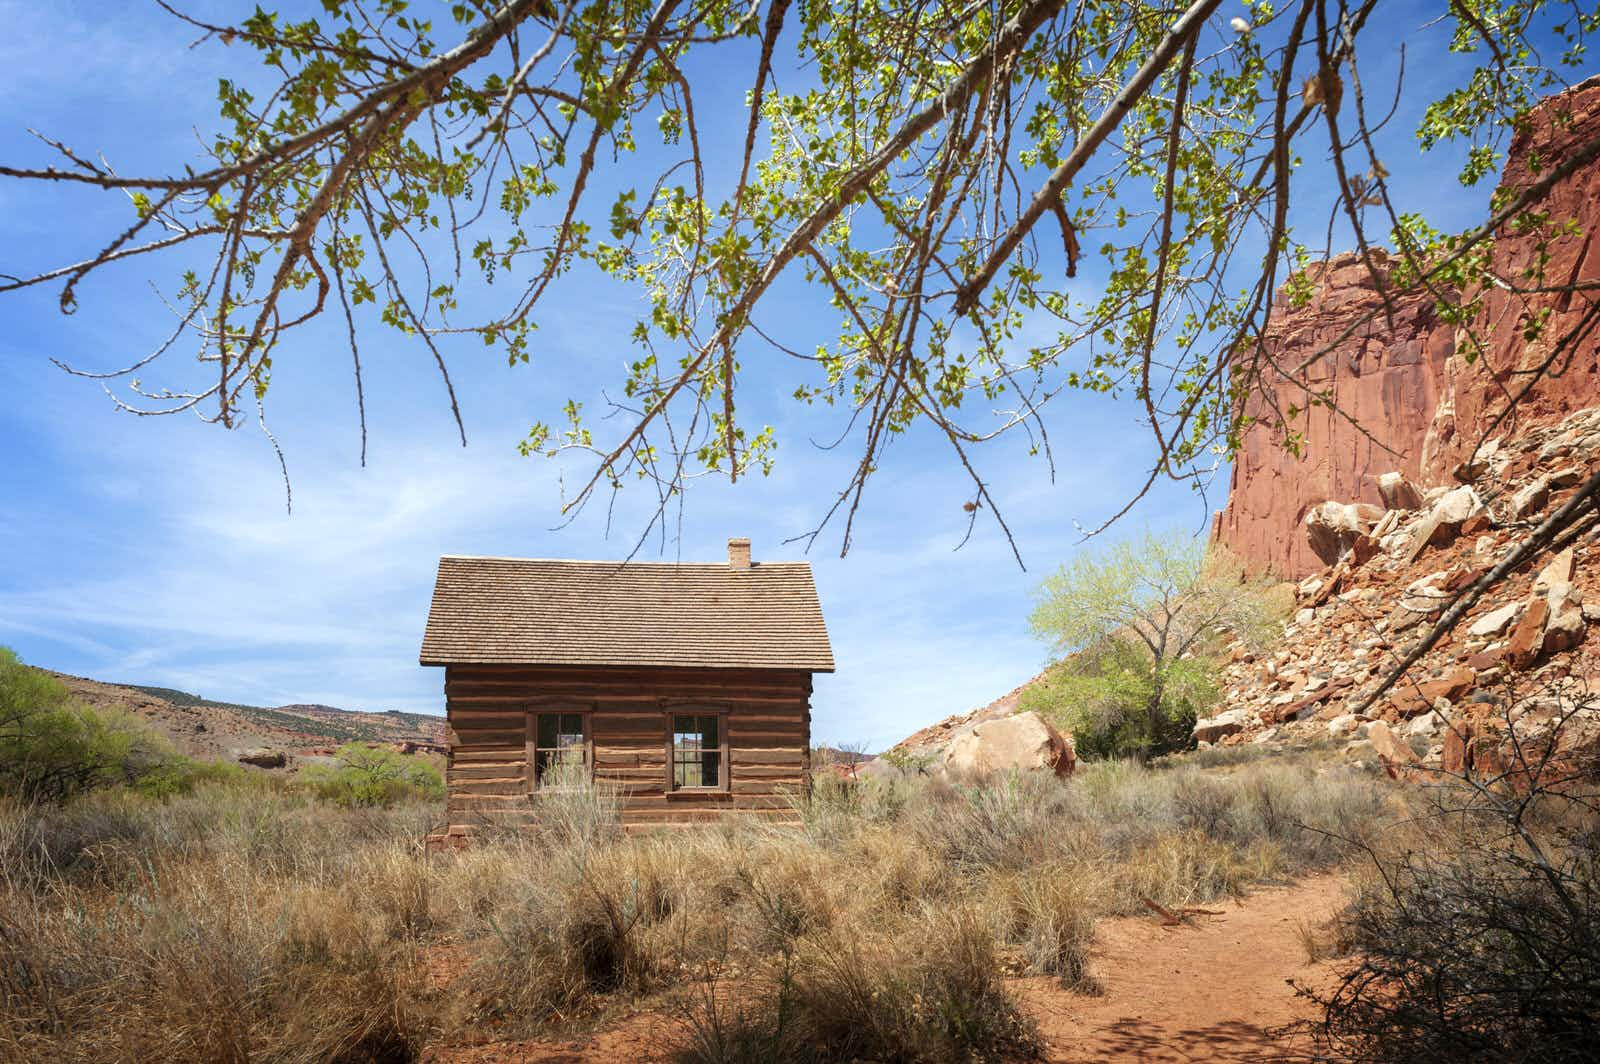 A tiny wooden cabin in the red landscape of Utah with branches overhanging in the foreground.